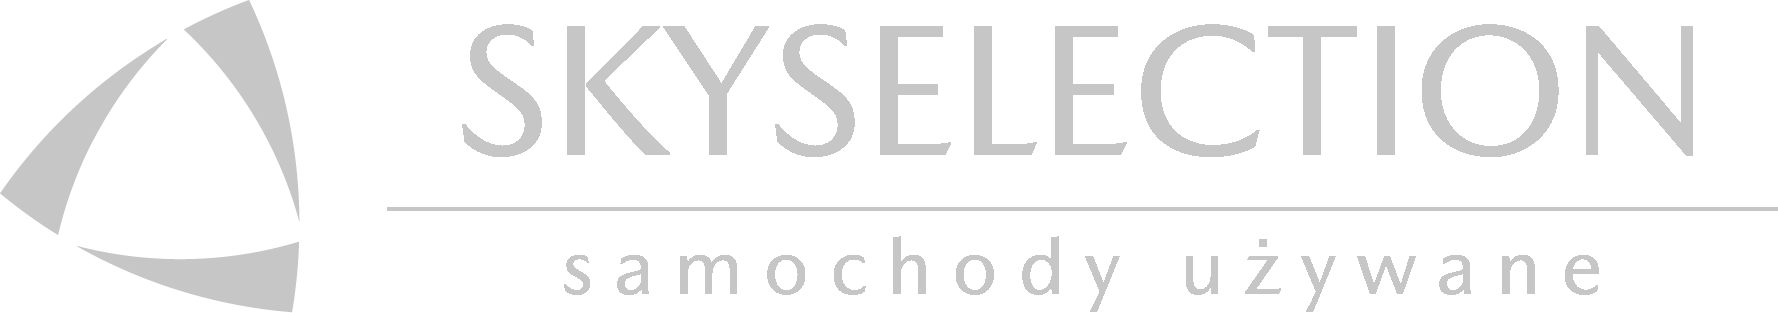 Skyselection - logo